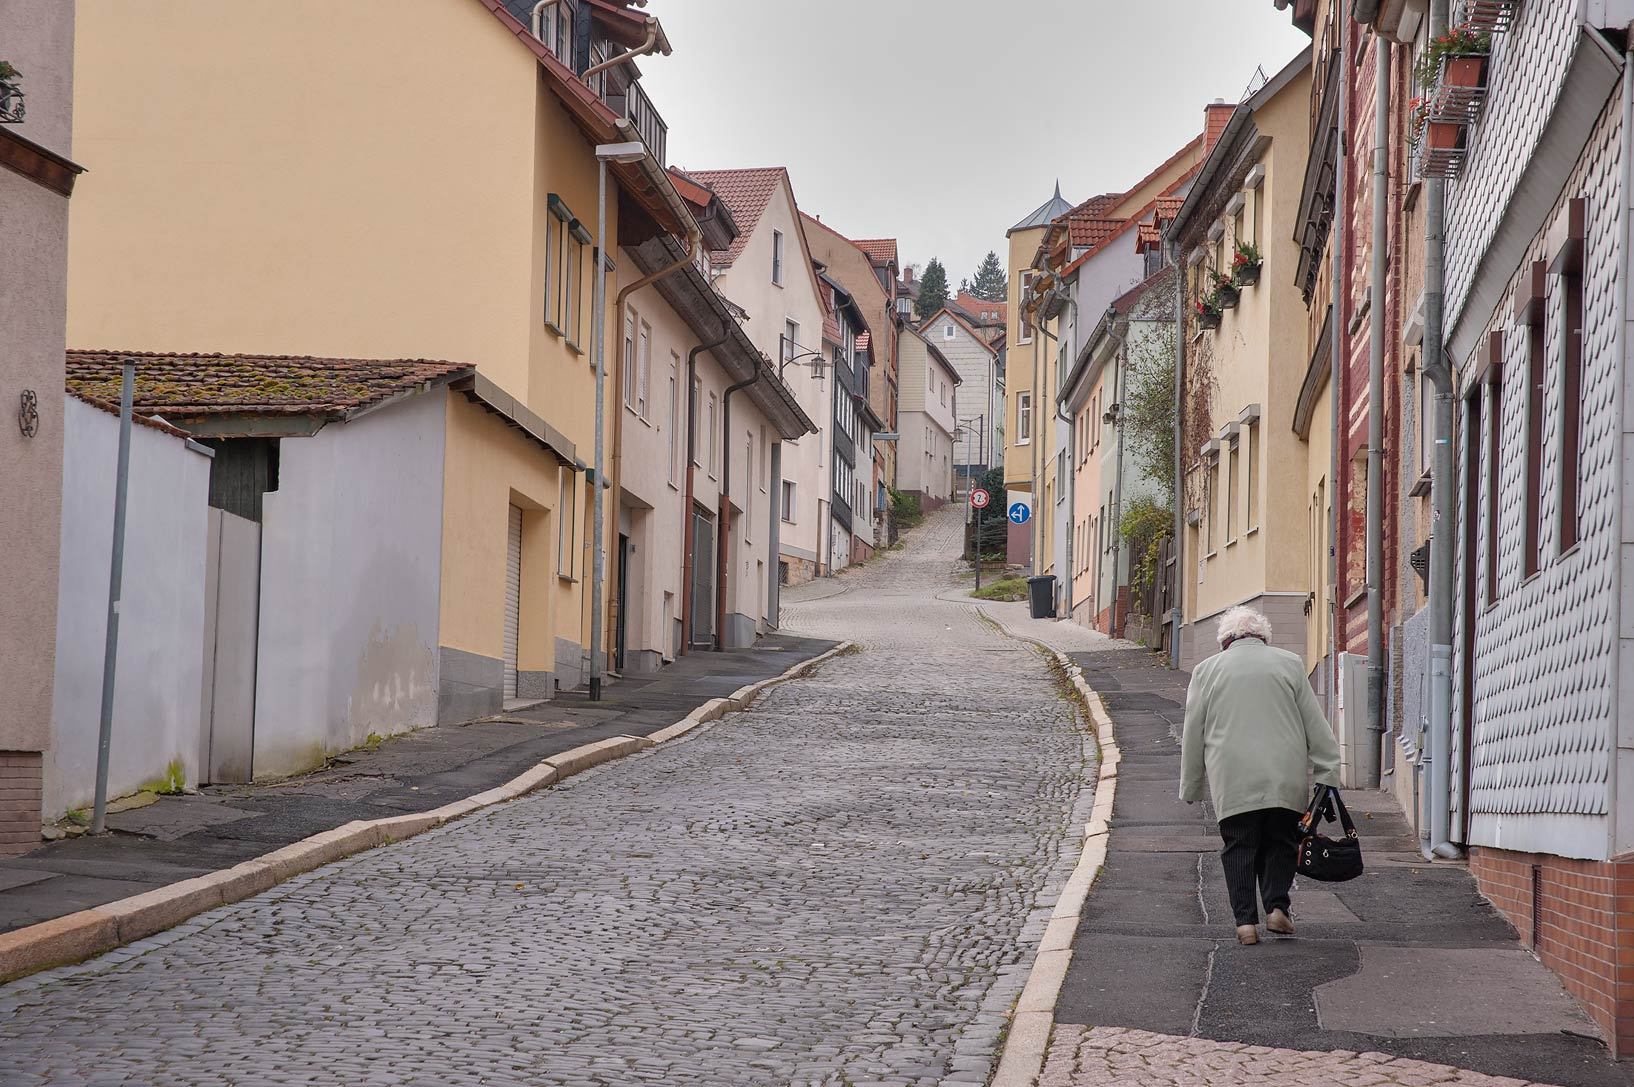 Street on a hill slope. Eisenach, Germany